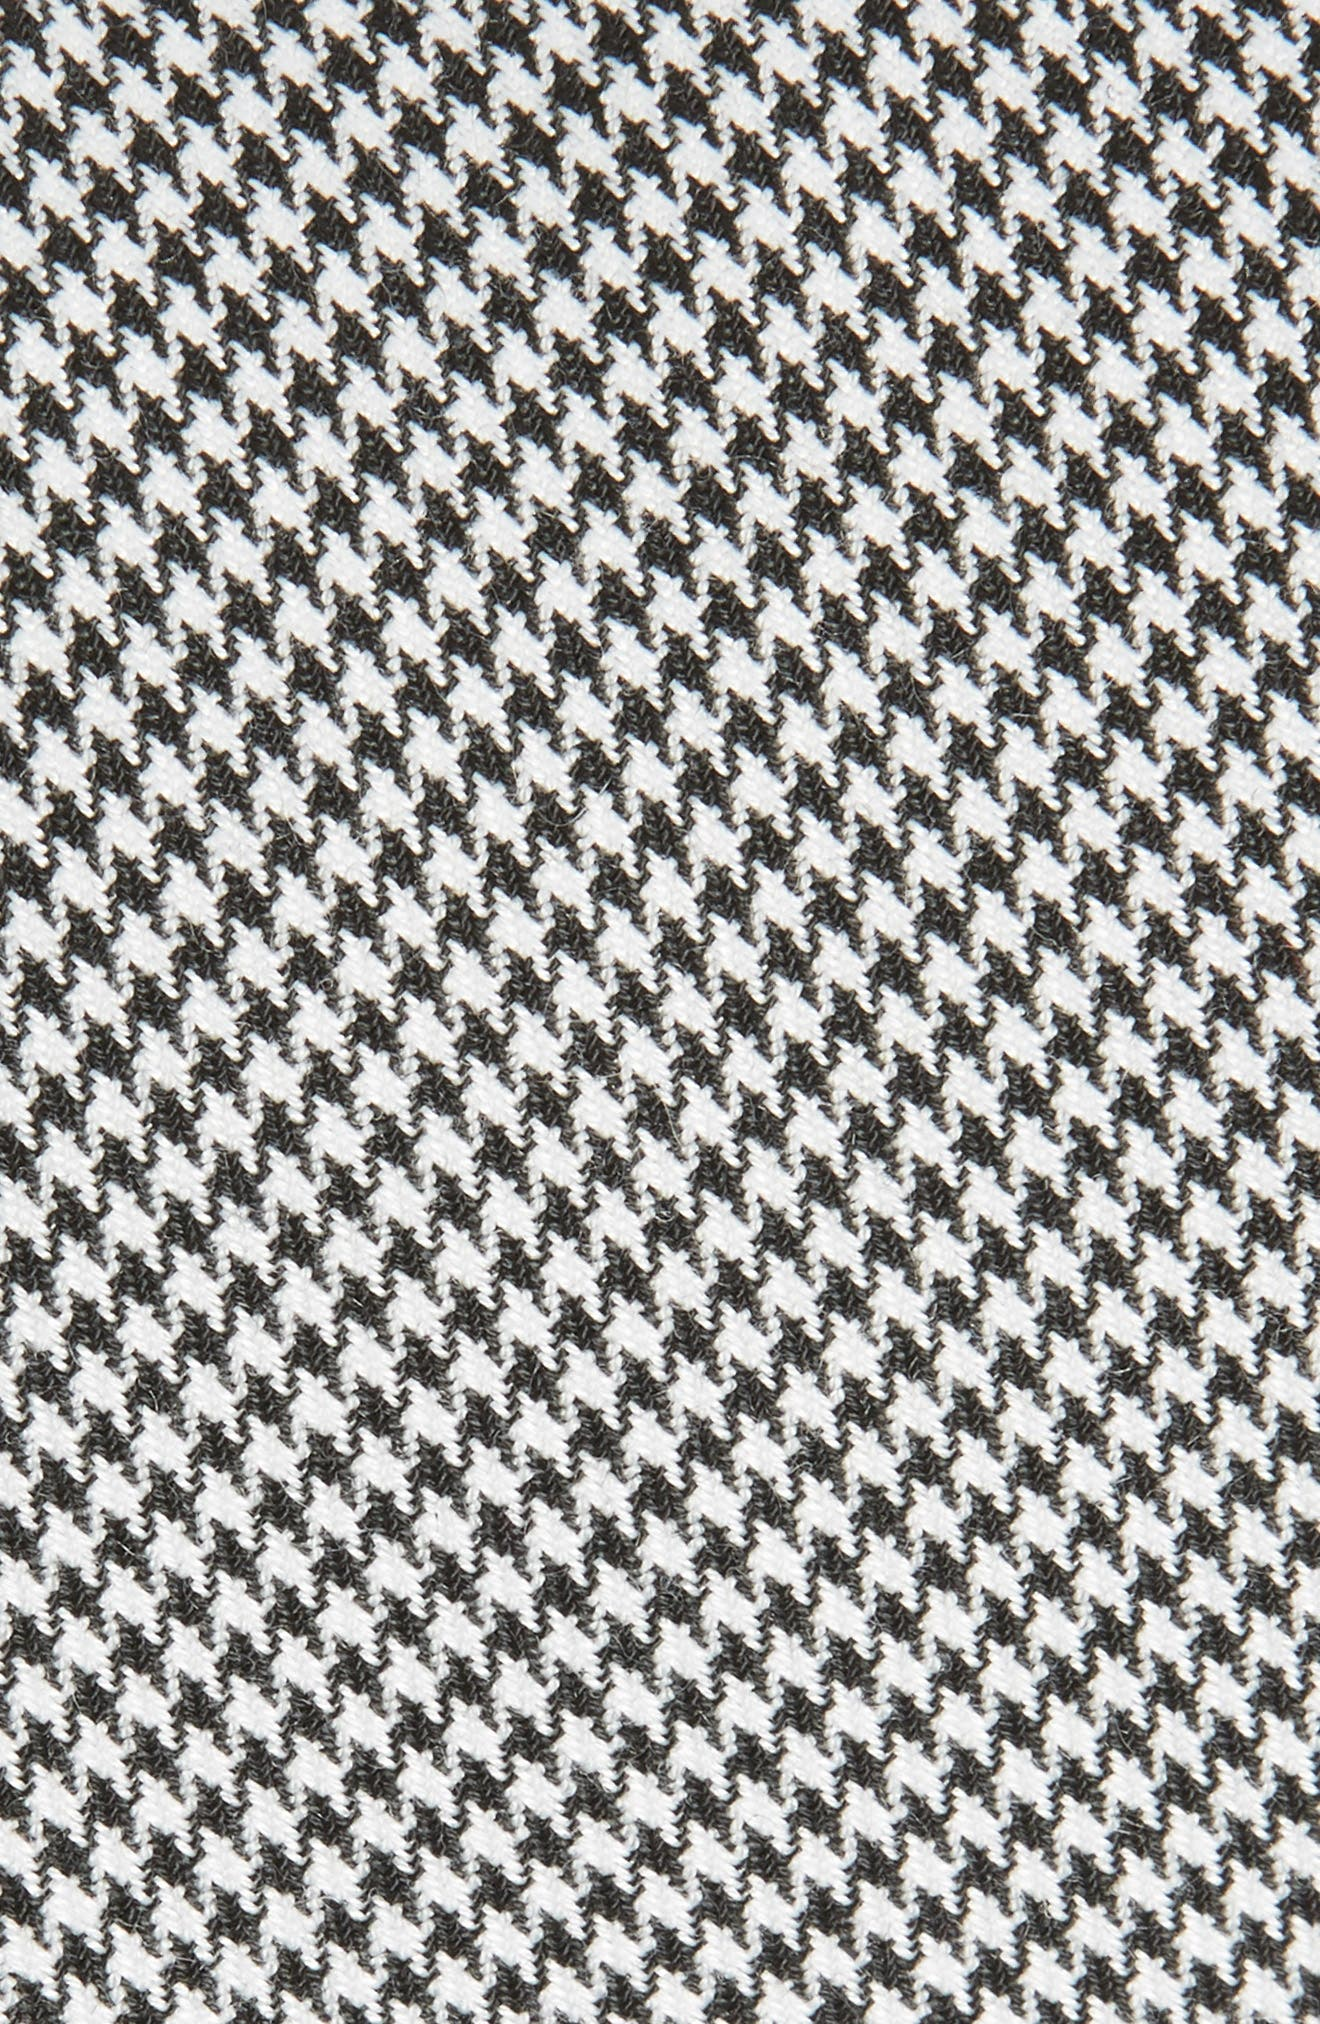 Houndstooth Woven Tie,                             Alternate thumbnail 2, color,                             001